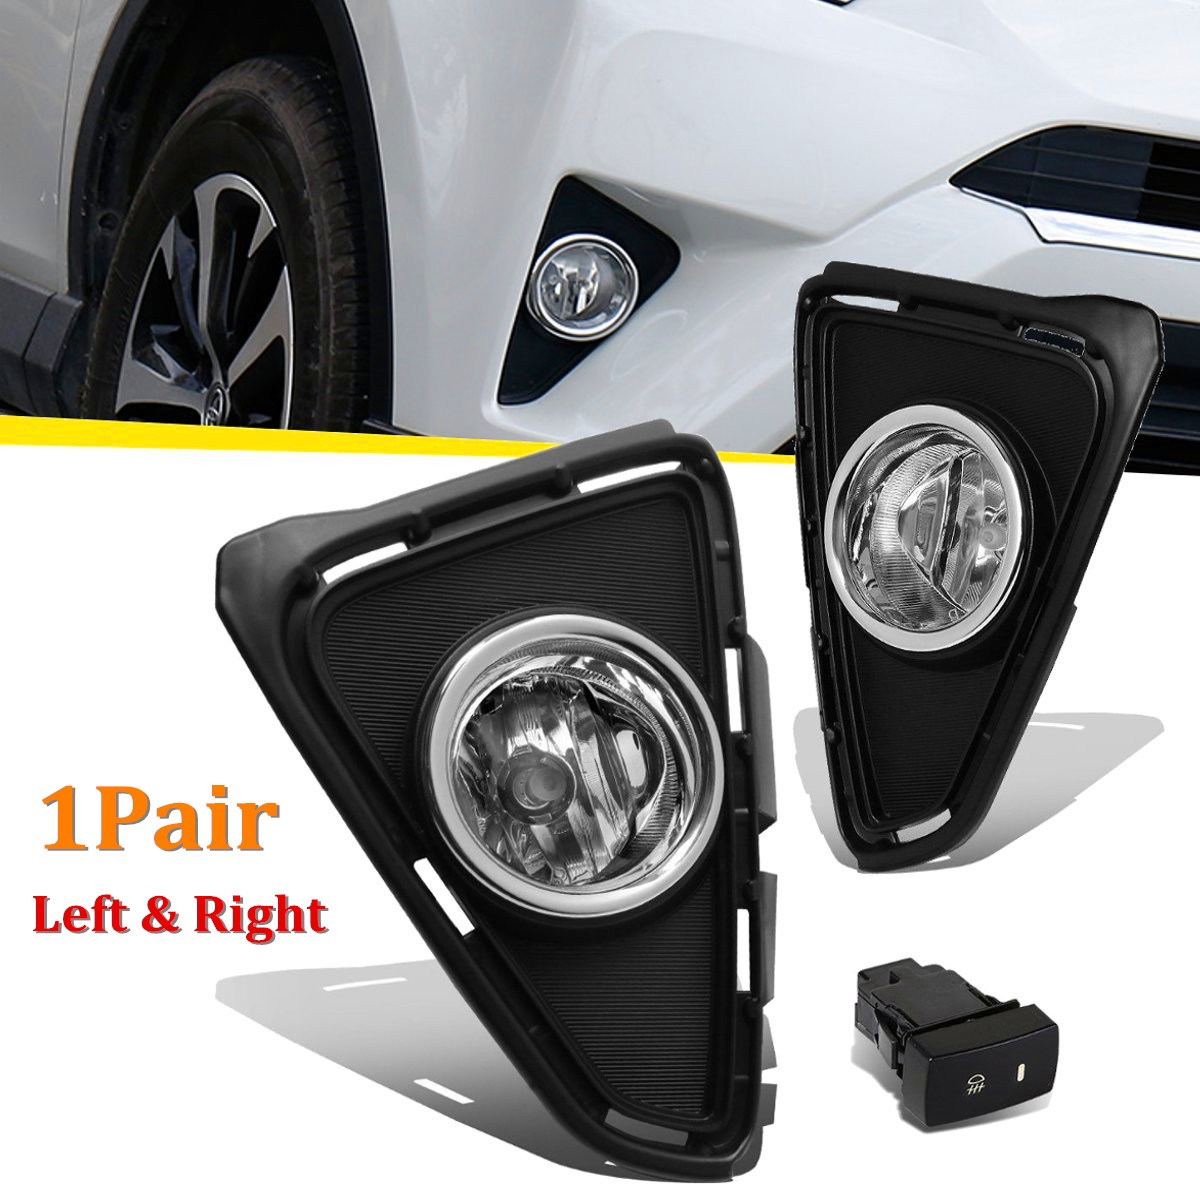 2pcs/pair LH/RH Front Bumper Clear Lens Fog Lights Driving Lamps Pair For Toyota Rav4 2016-2017 1 pair lh rh driving bumper fog lamps lights for toyota corolla 2011 2012